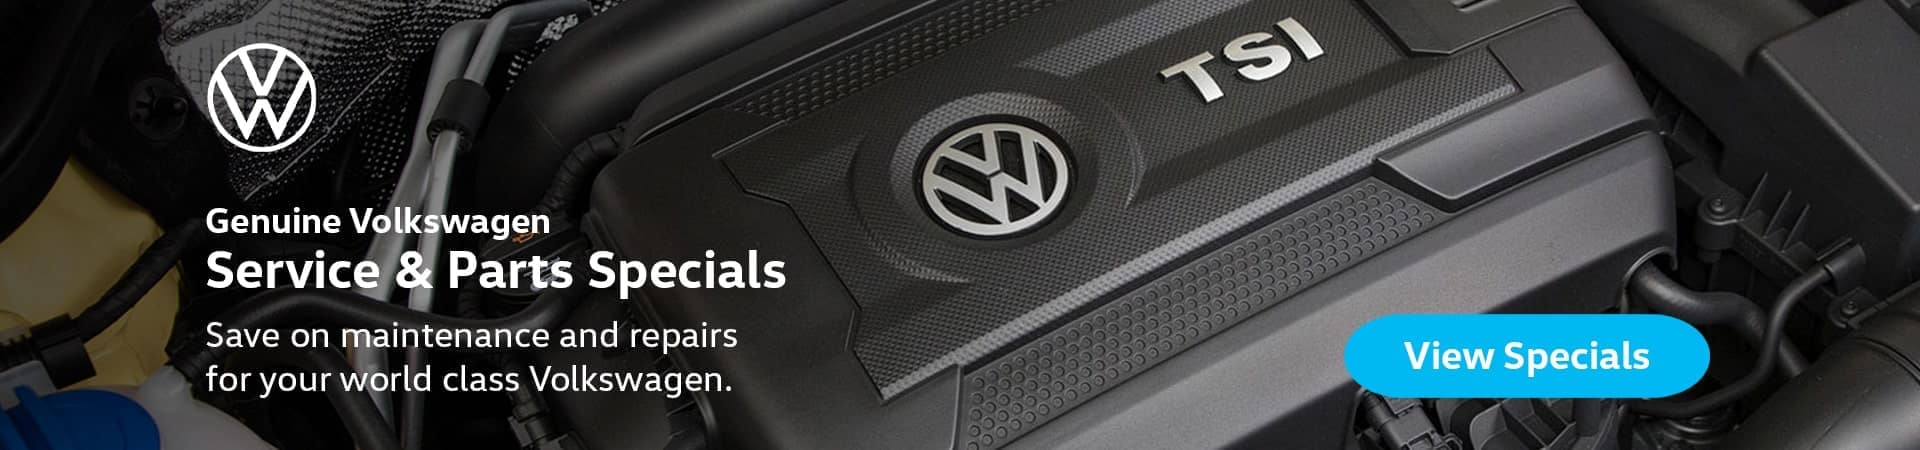 vw-service-homepage-banner-1920×450-min